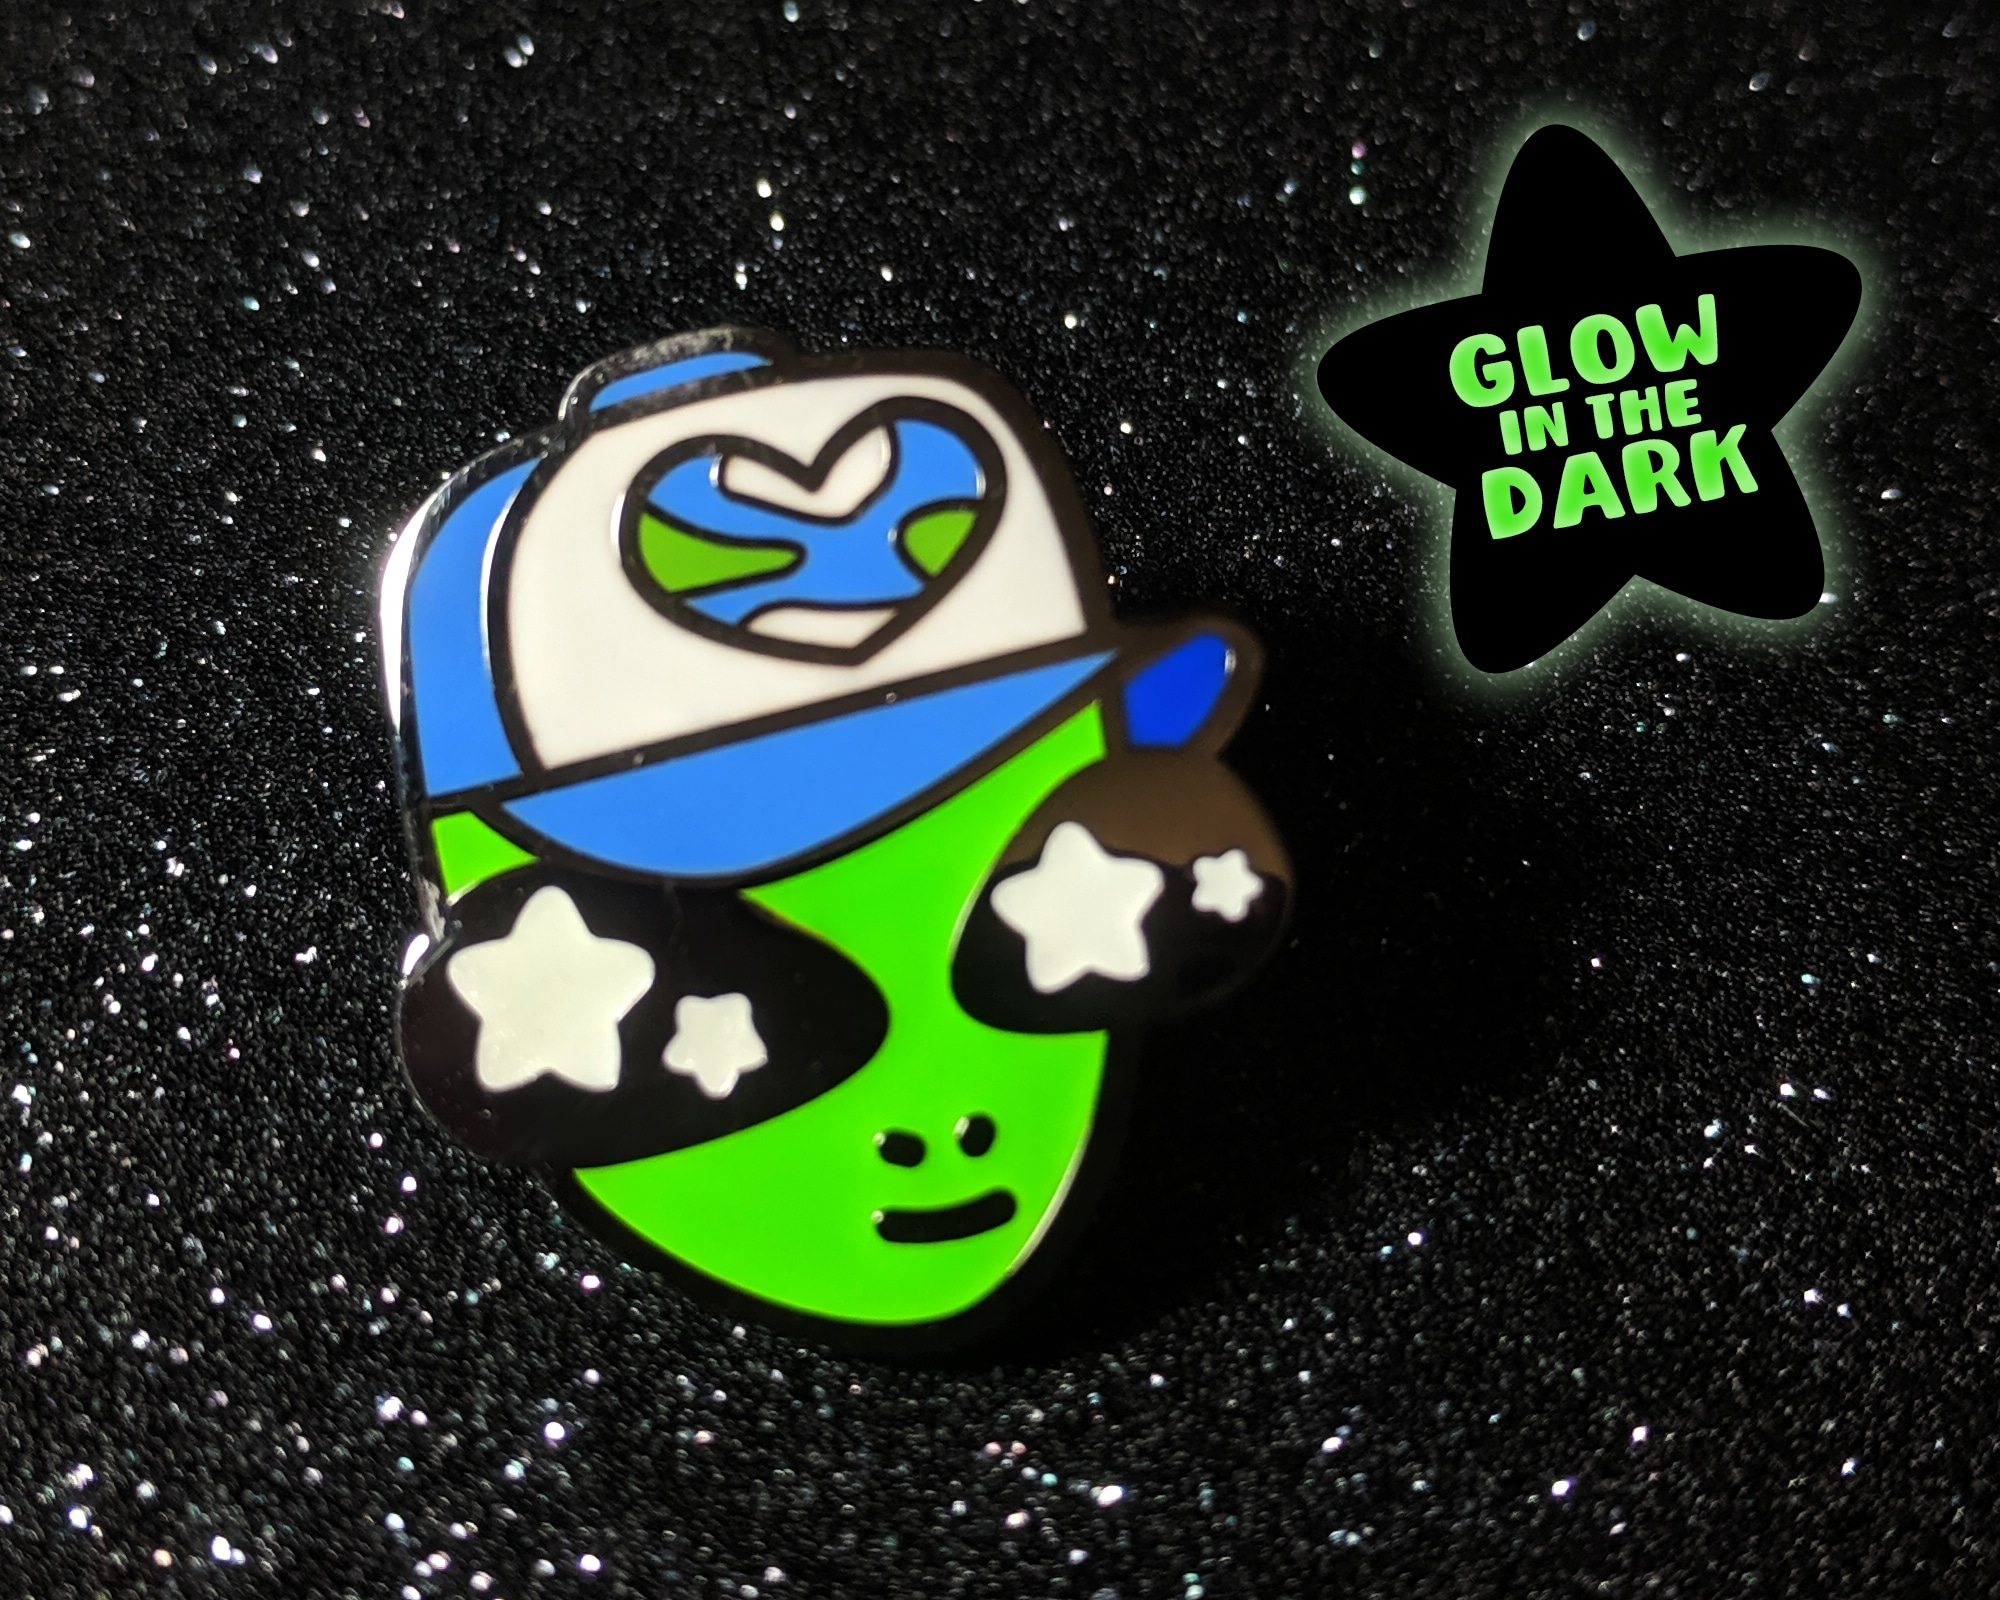 Alien Glow In The Dark Hard Enamel Pin By Beth Parow Illustration & Design